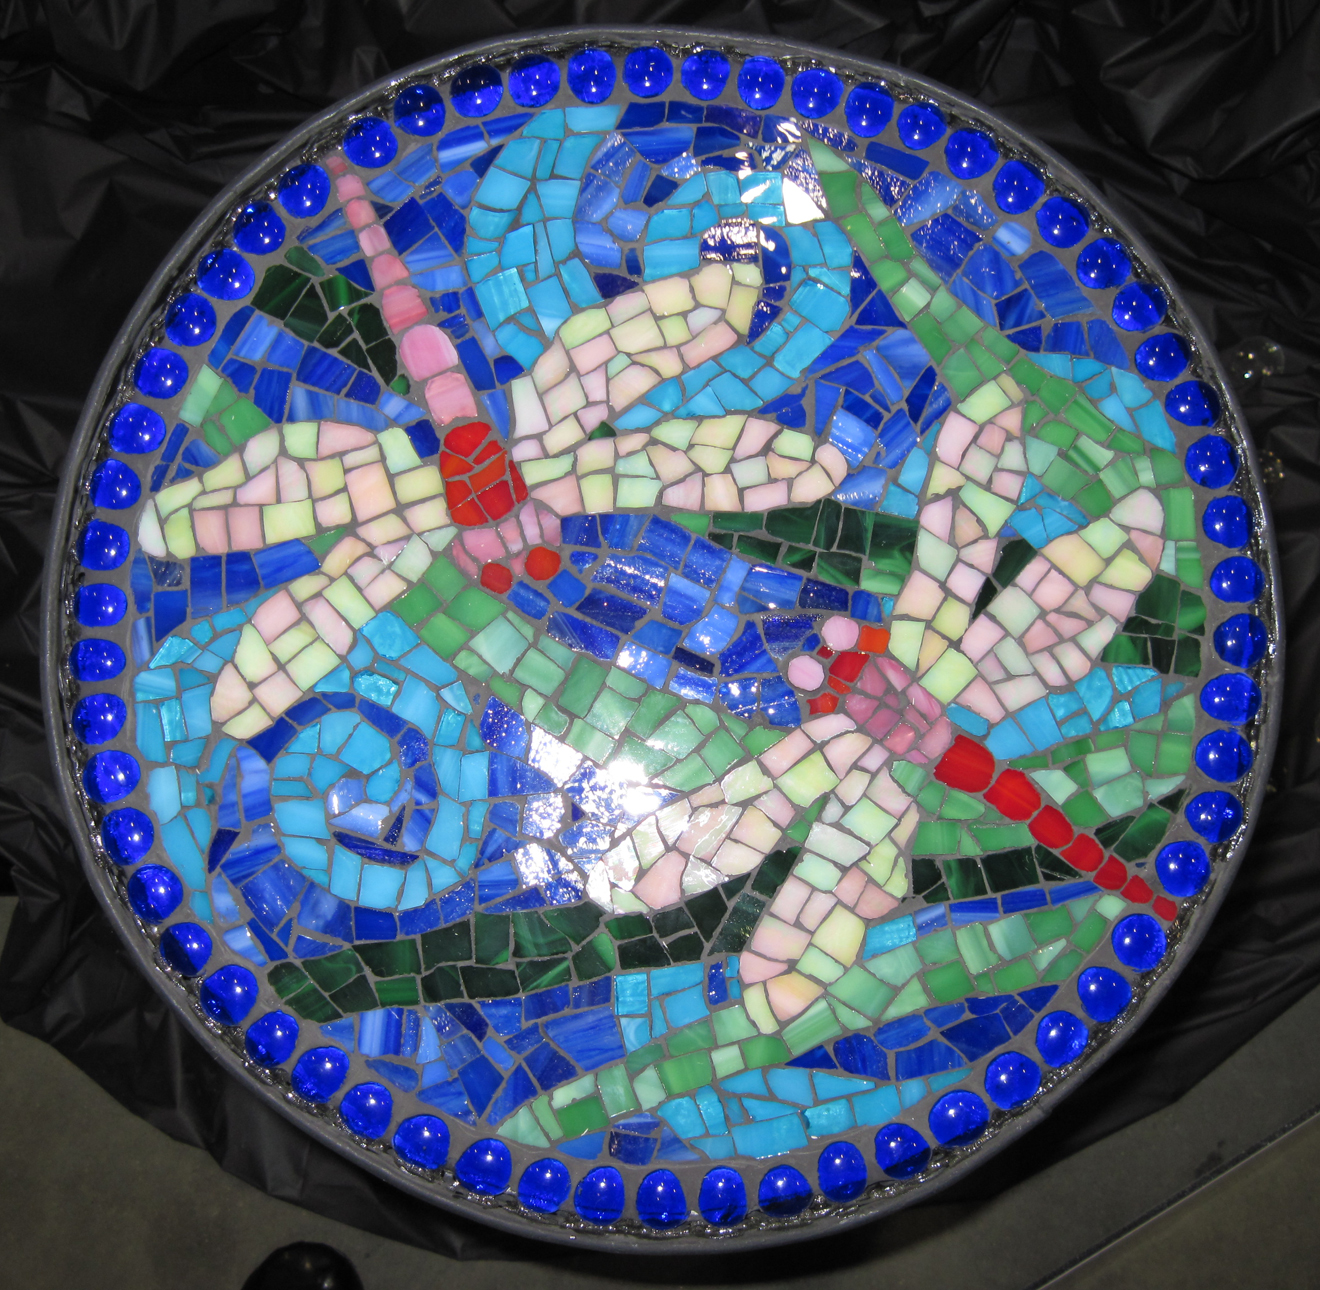 1000 images about mosaic dragonflies on pinterest for Garden mosaics designs